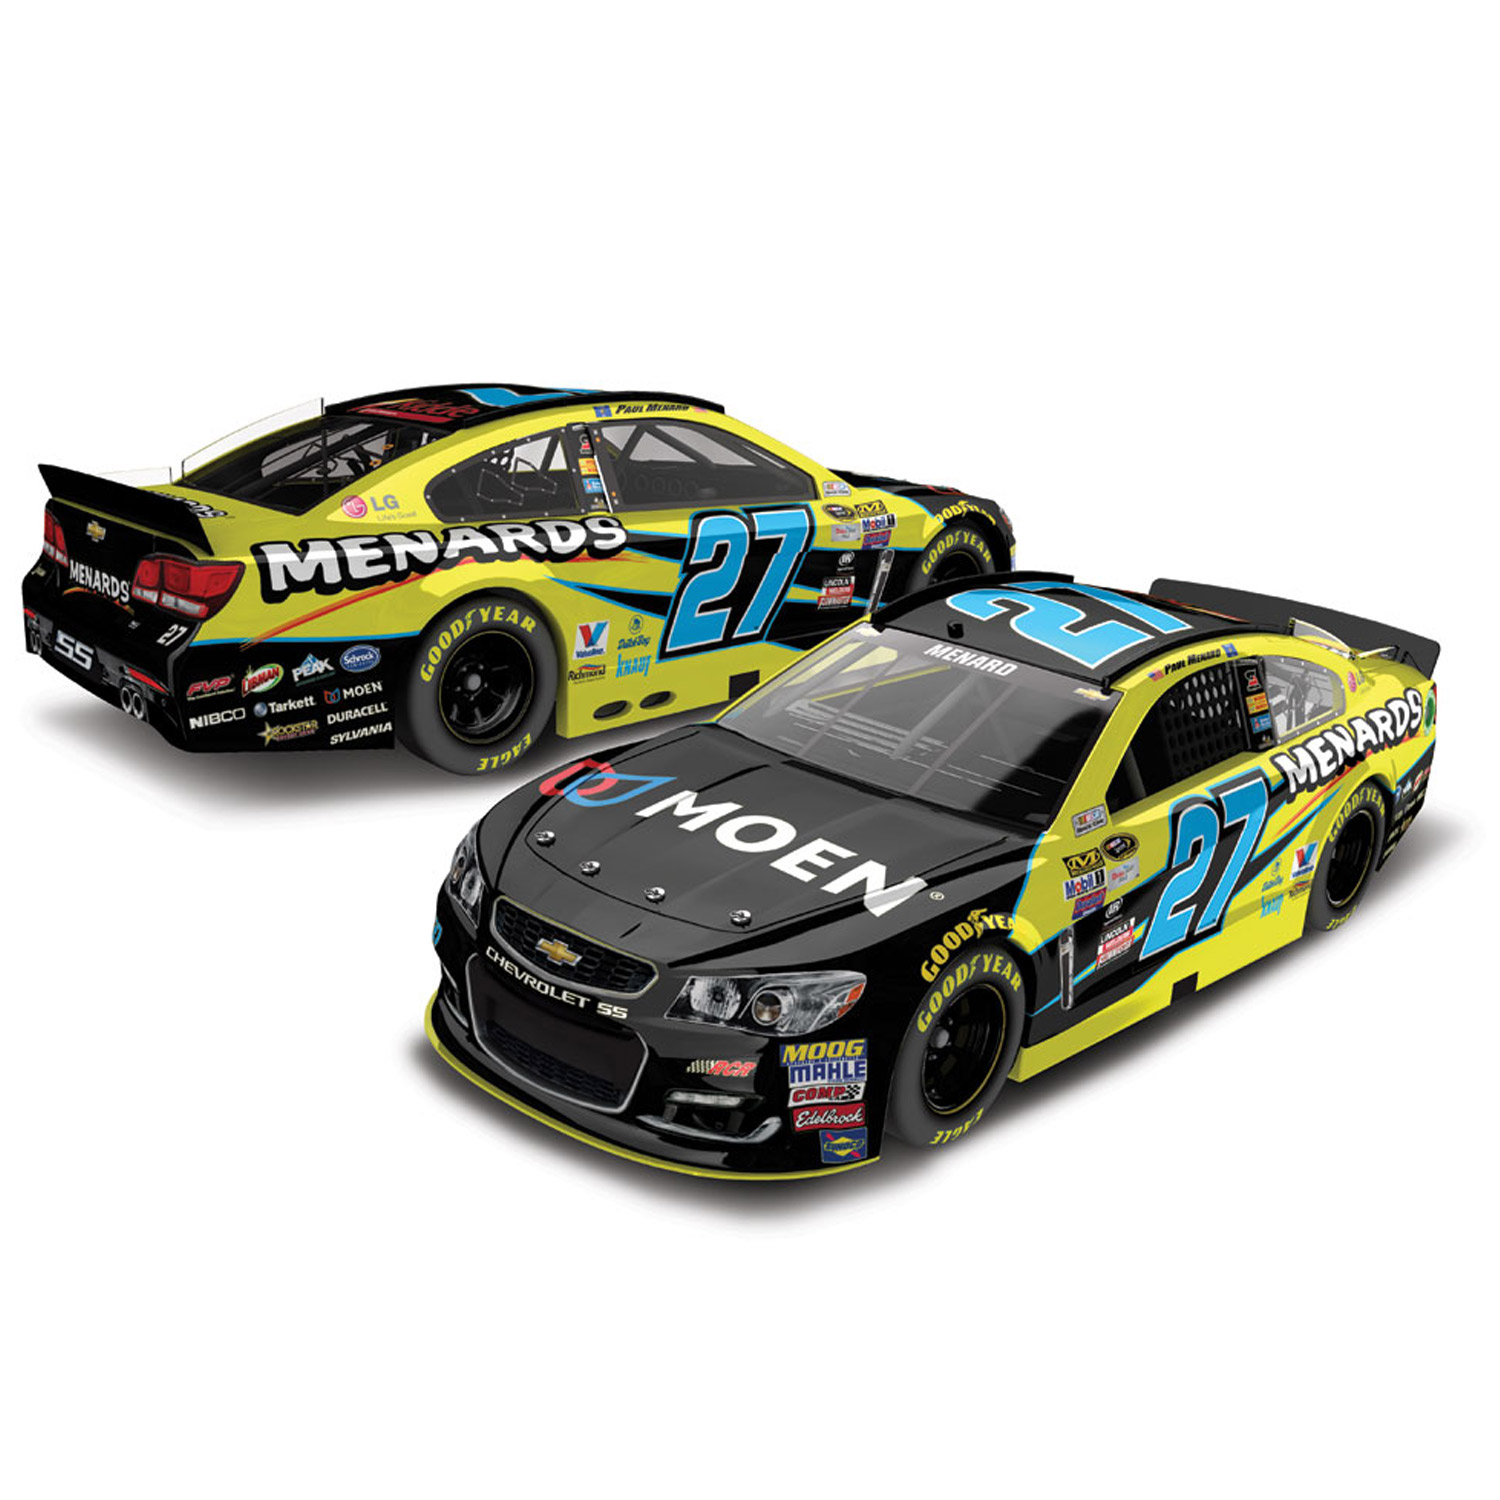 Paul Menard Action Racing 2016 #27 Menard's 1:24 Nascar Sprint Cup Series Platinum... by Lionel LLC